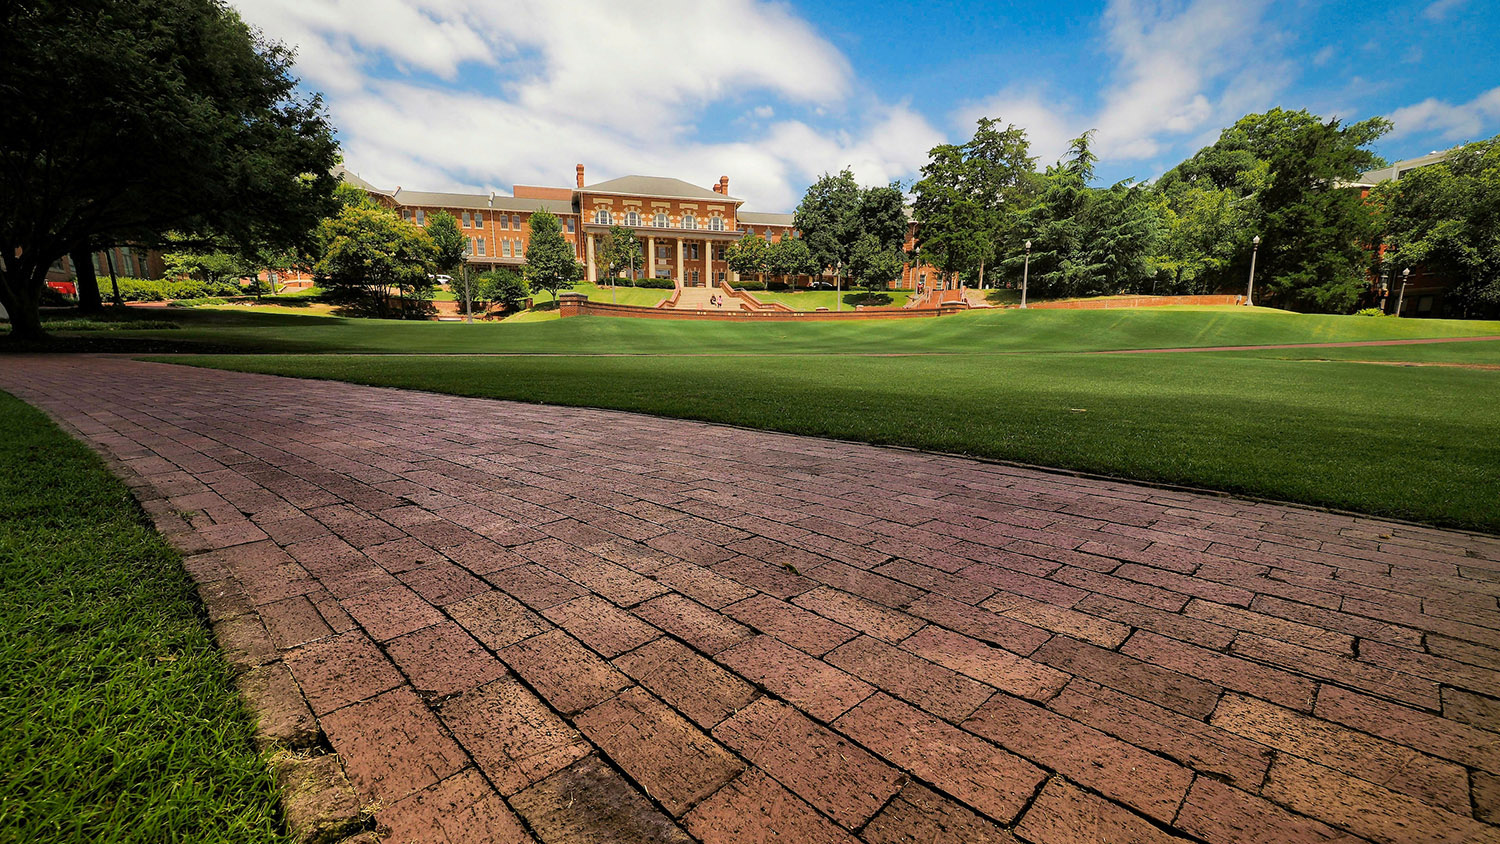 Close-up of brick path with the Court of Carolina in the background